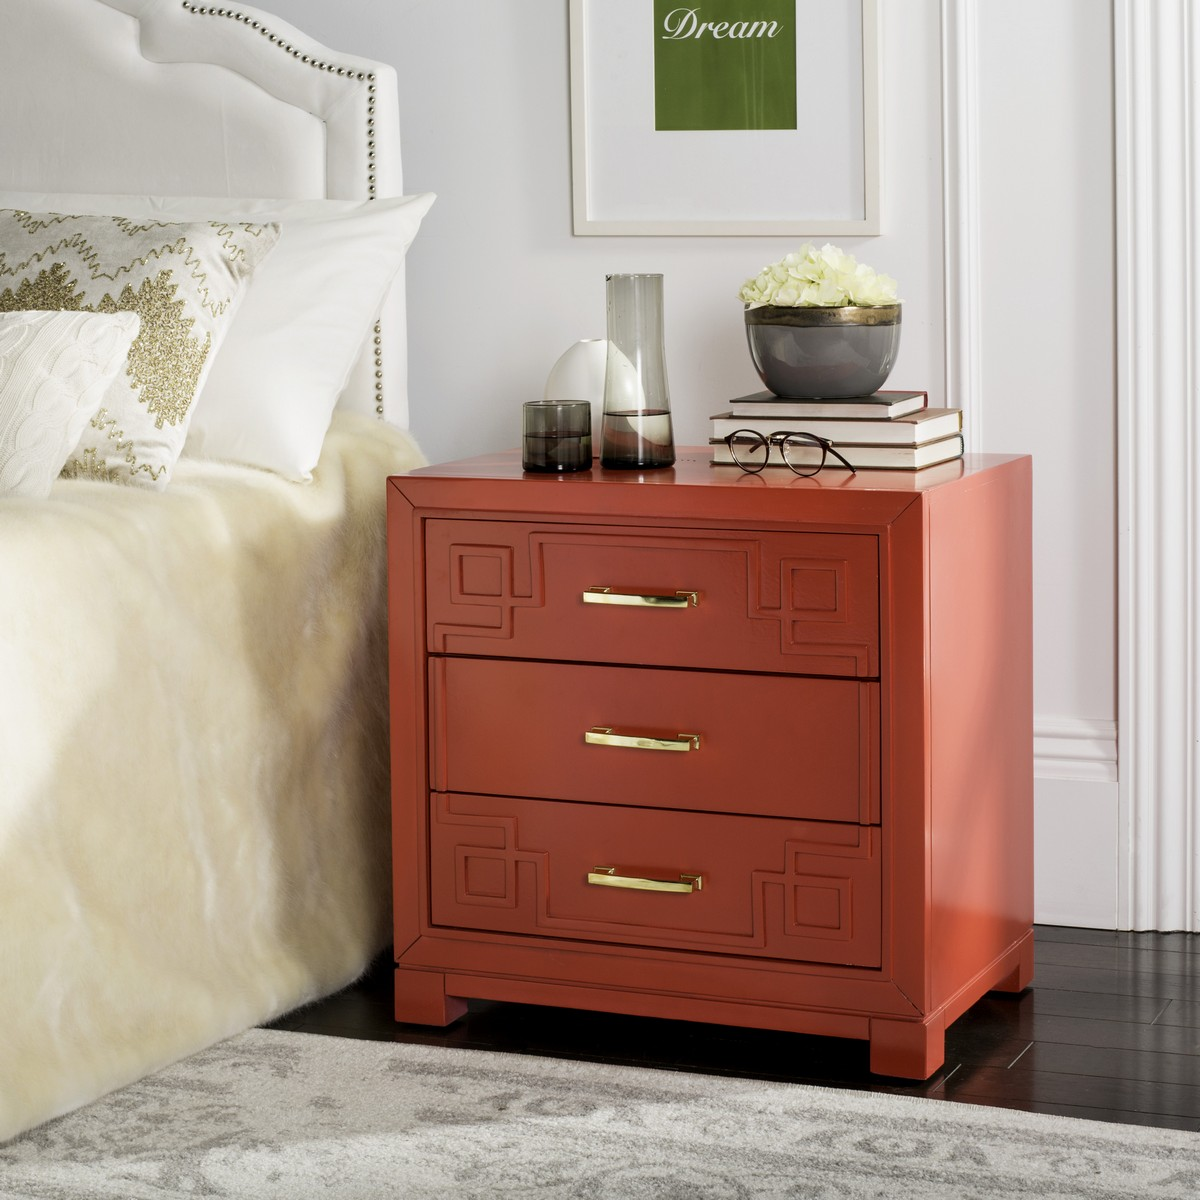 Fox6278e Accent Tables Nightstands Furniture By Safavieh